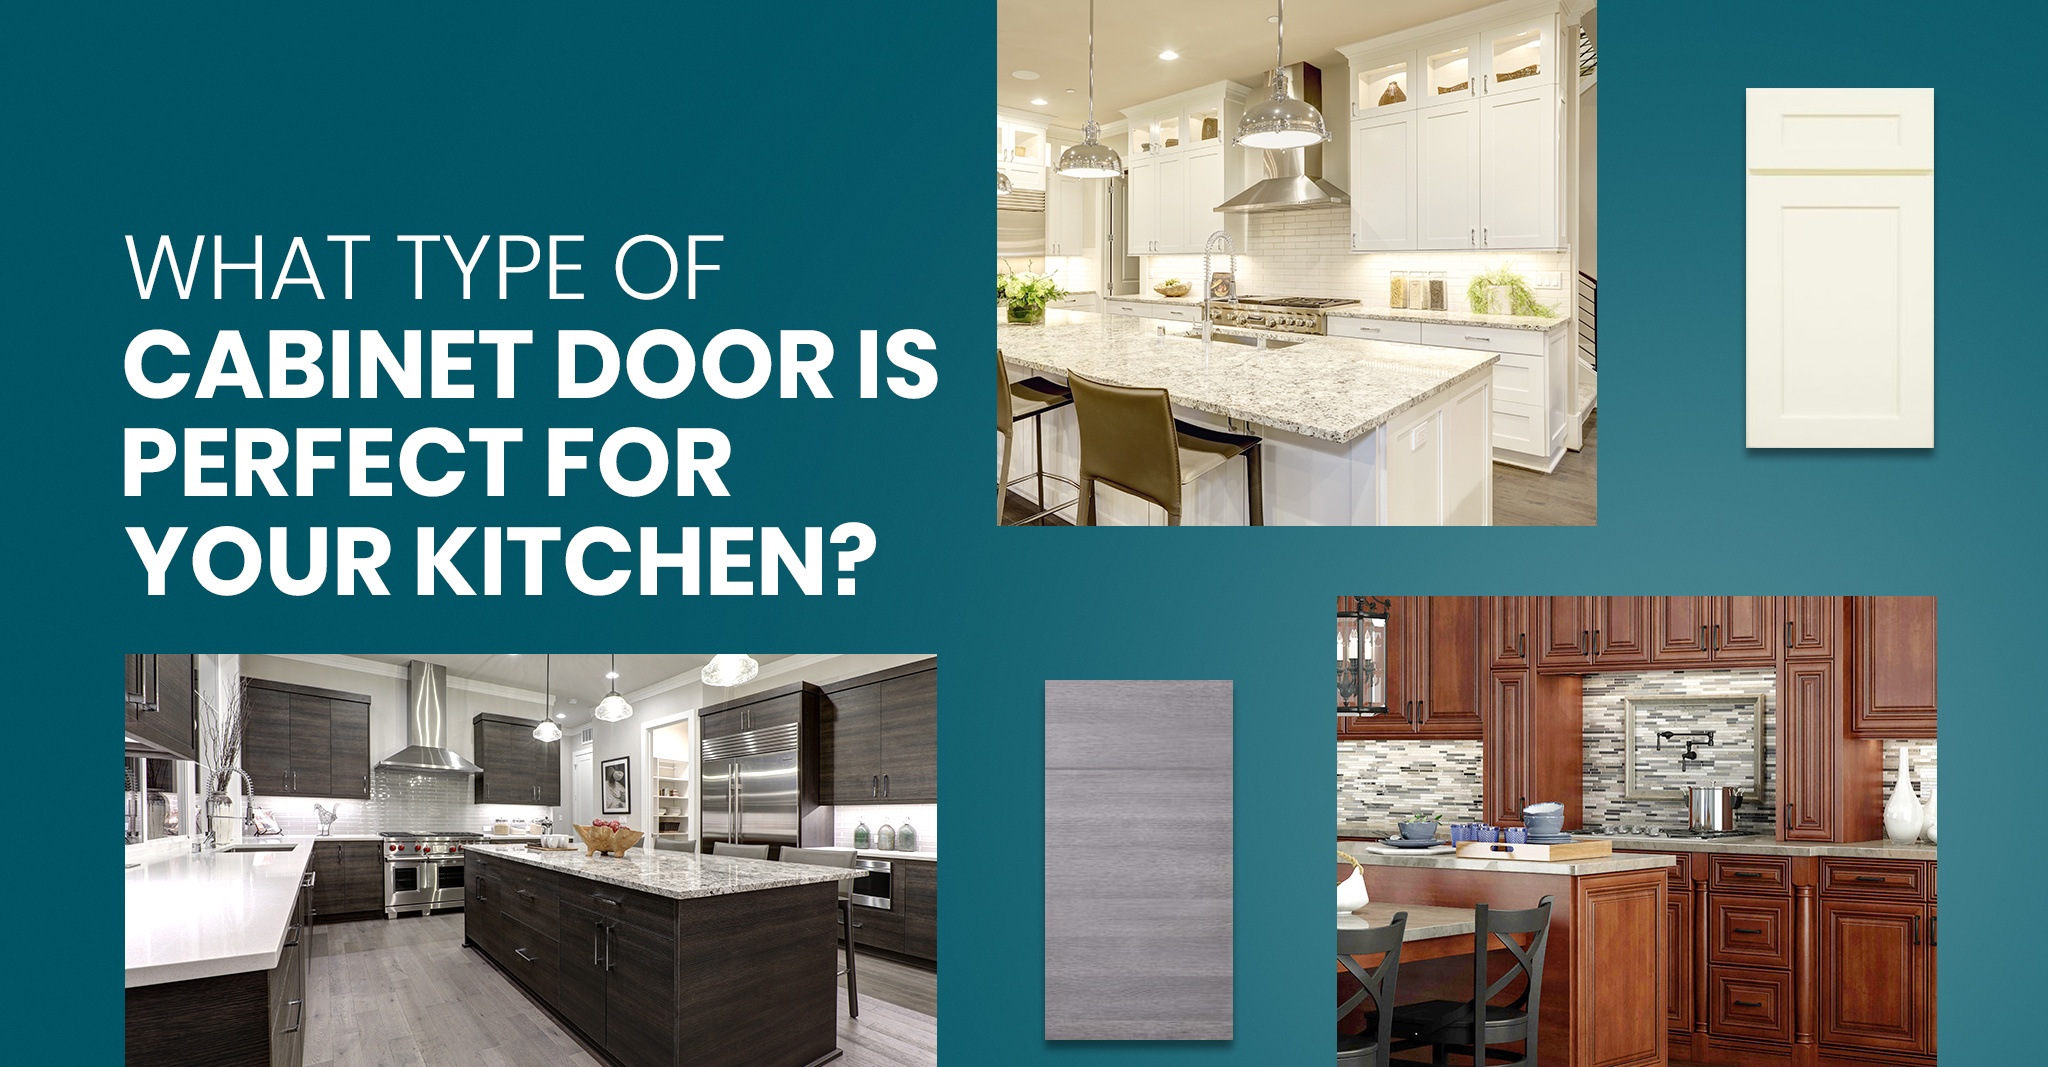 What type of cabinet door is perfect for your kitchen?